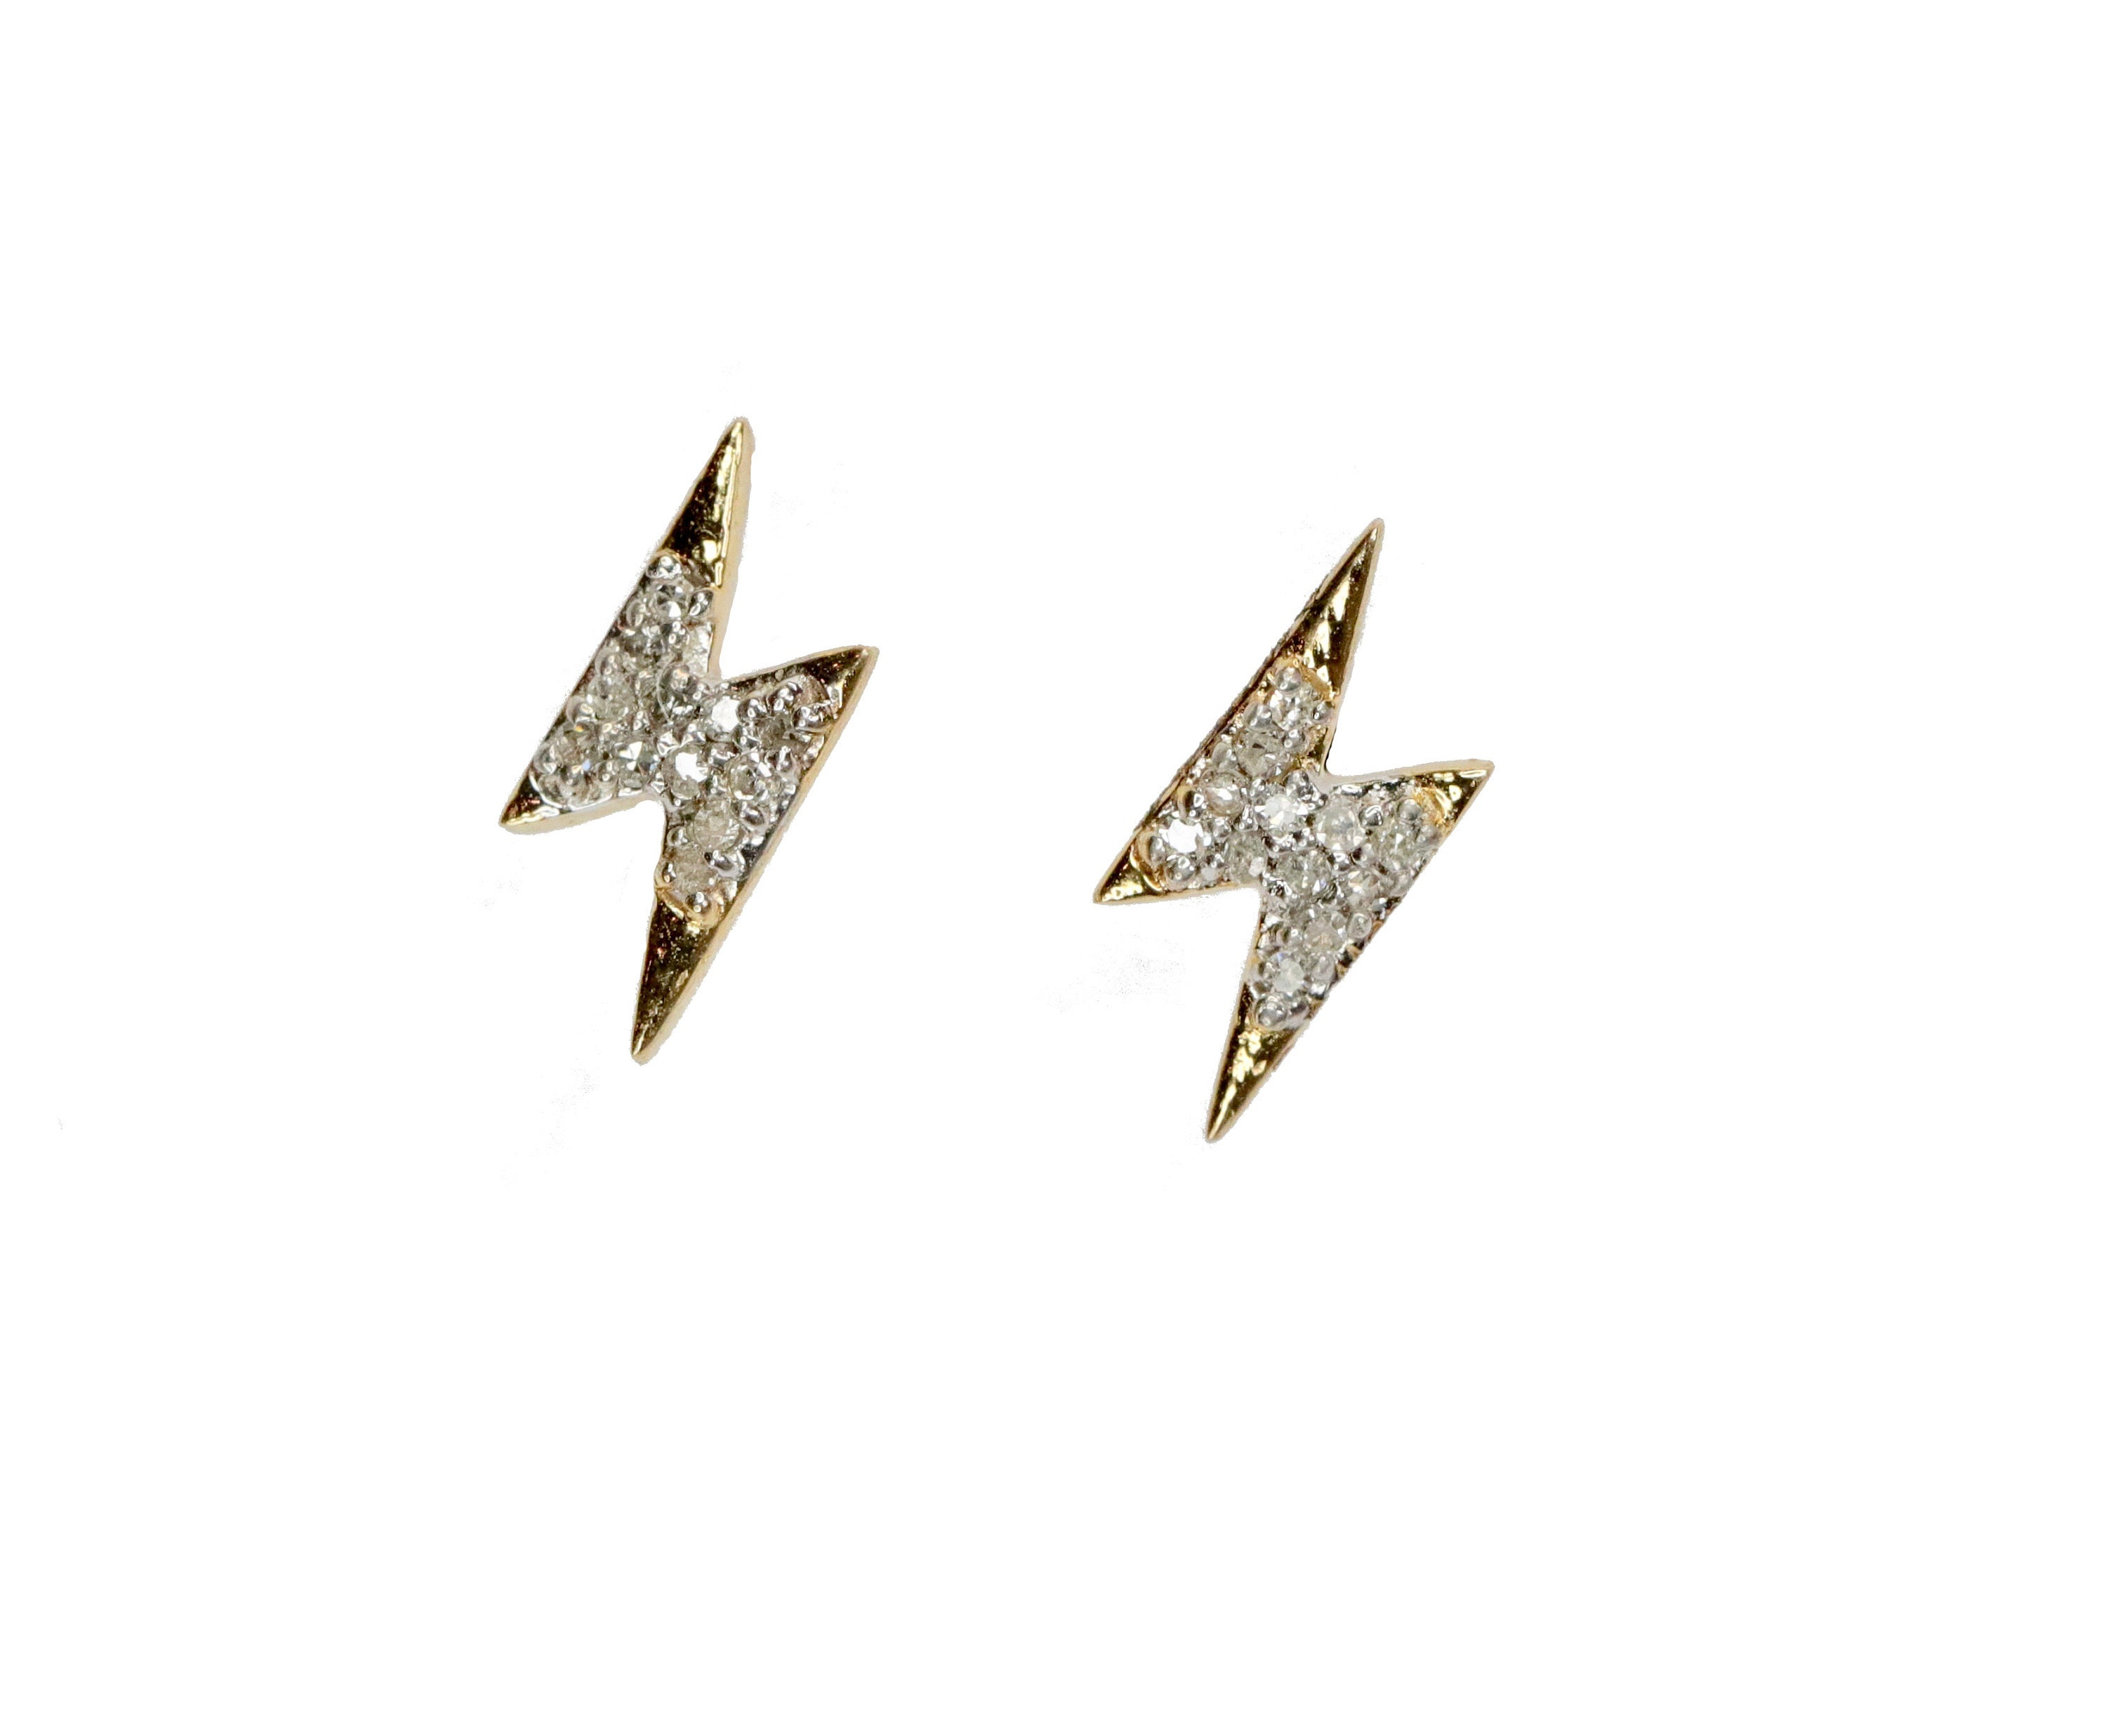 Lightning Bolt Stud Earrings 14k Gold Pave Diamond Stud Solid 14k Yellow Gold 14k Rose Gold Dainty Bolt Stud Earring Holiday Gift For Her